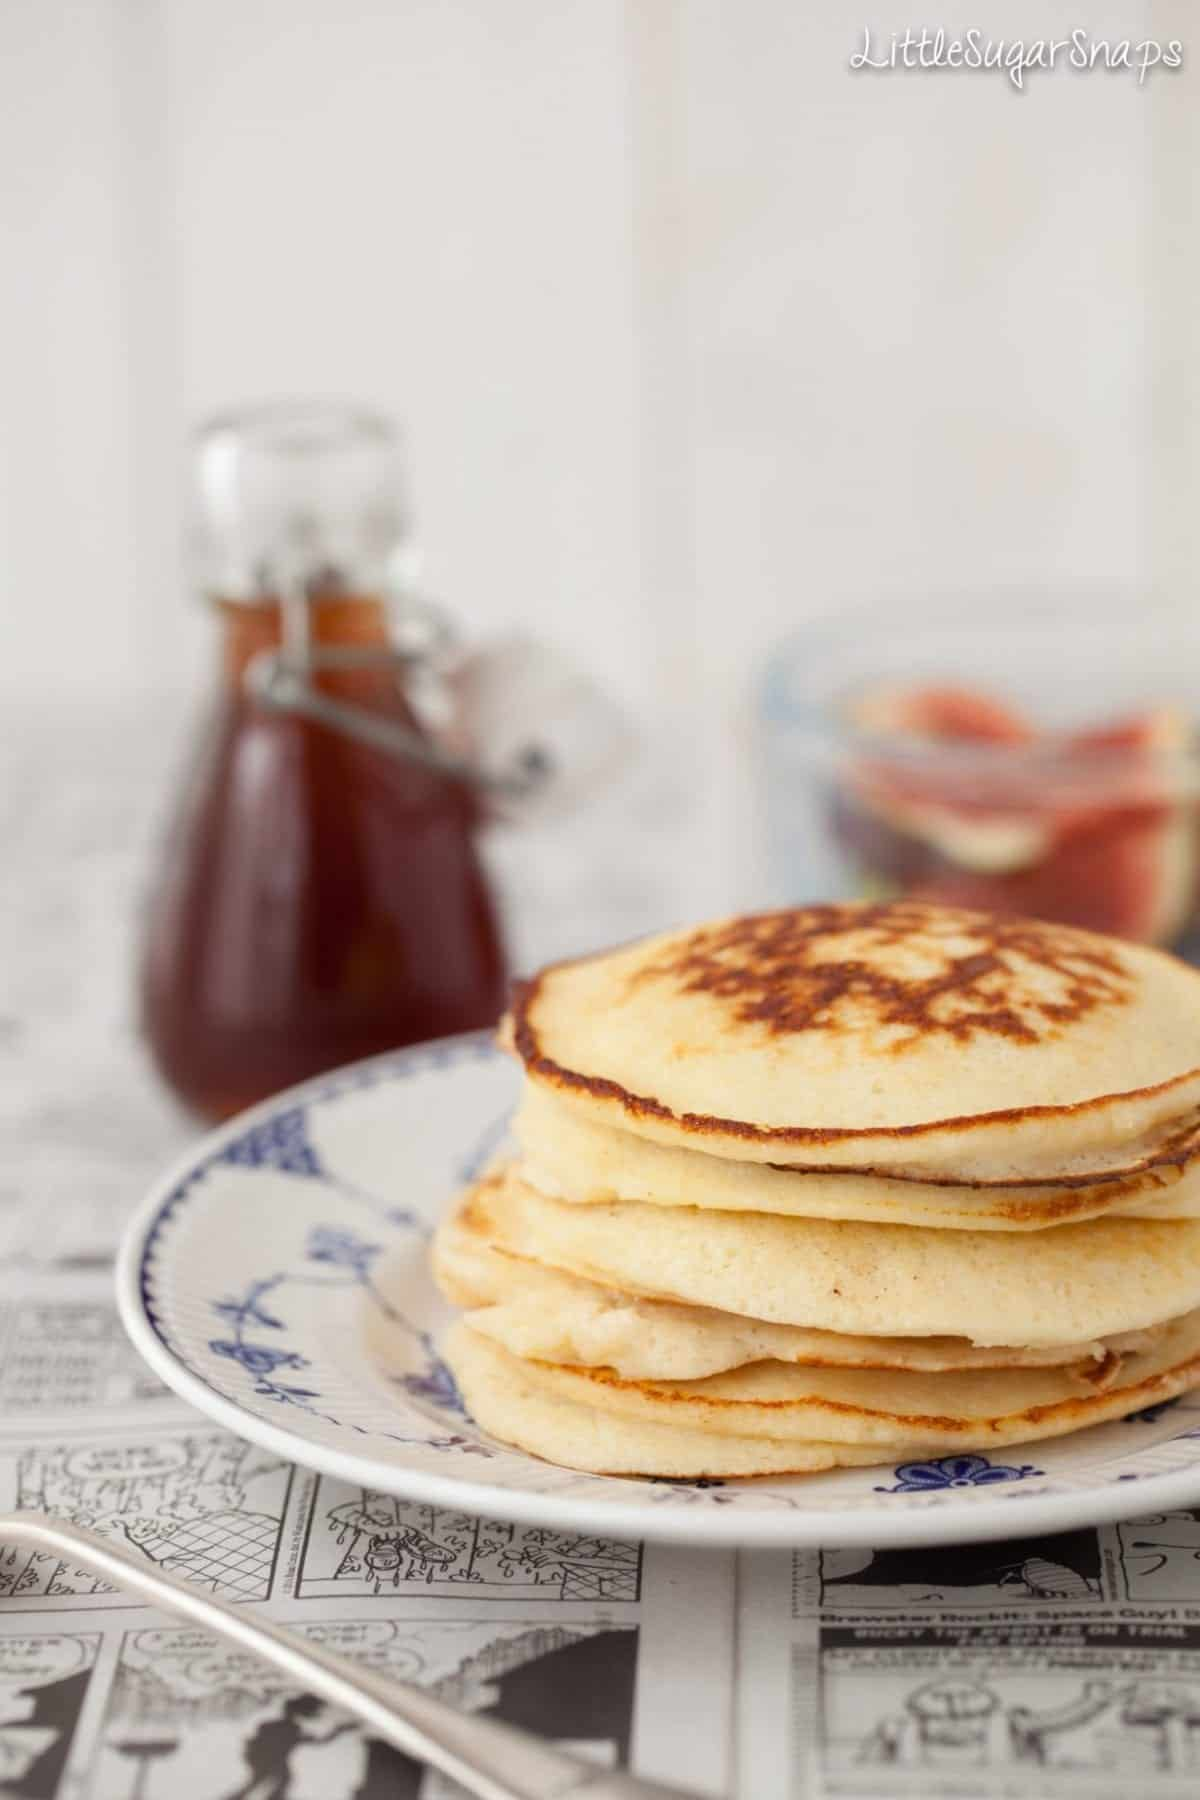 Ricotta hotcakes in a stack with syrup and figs ready to put on